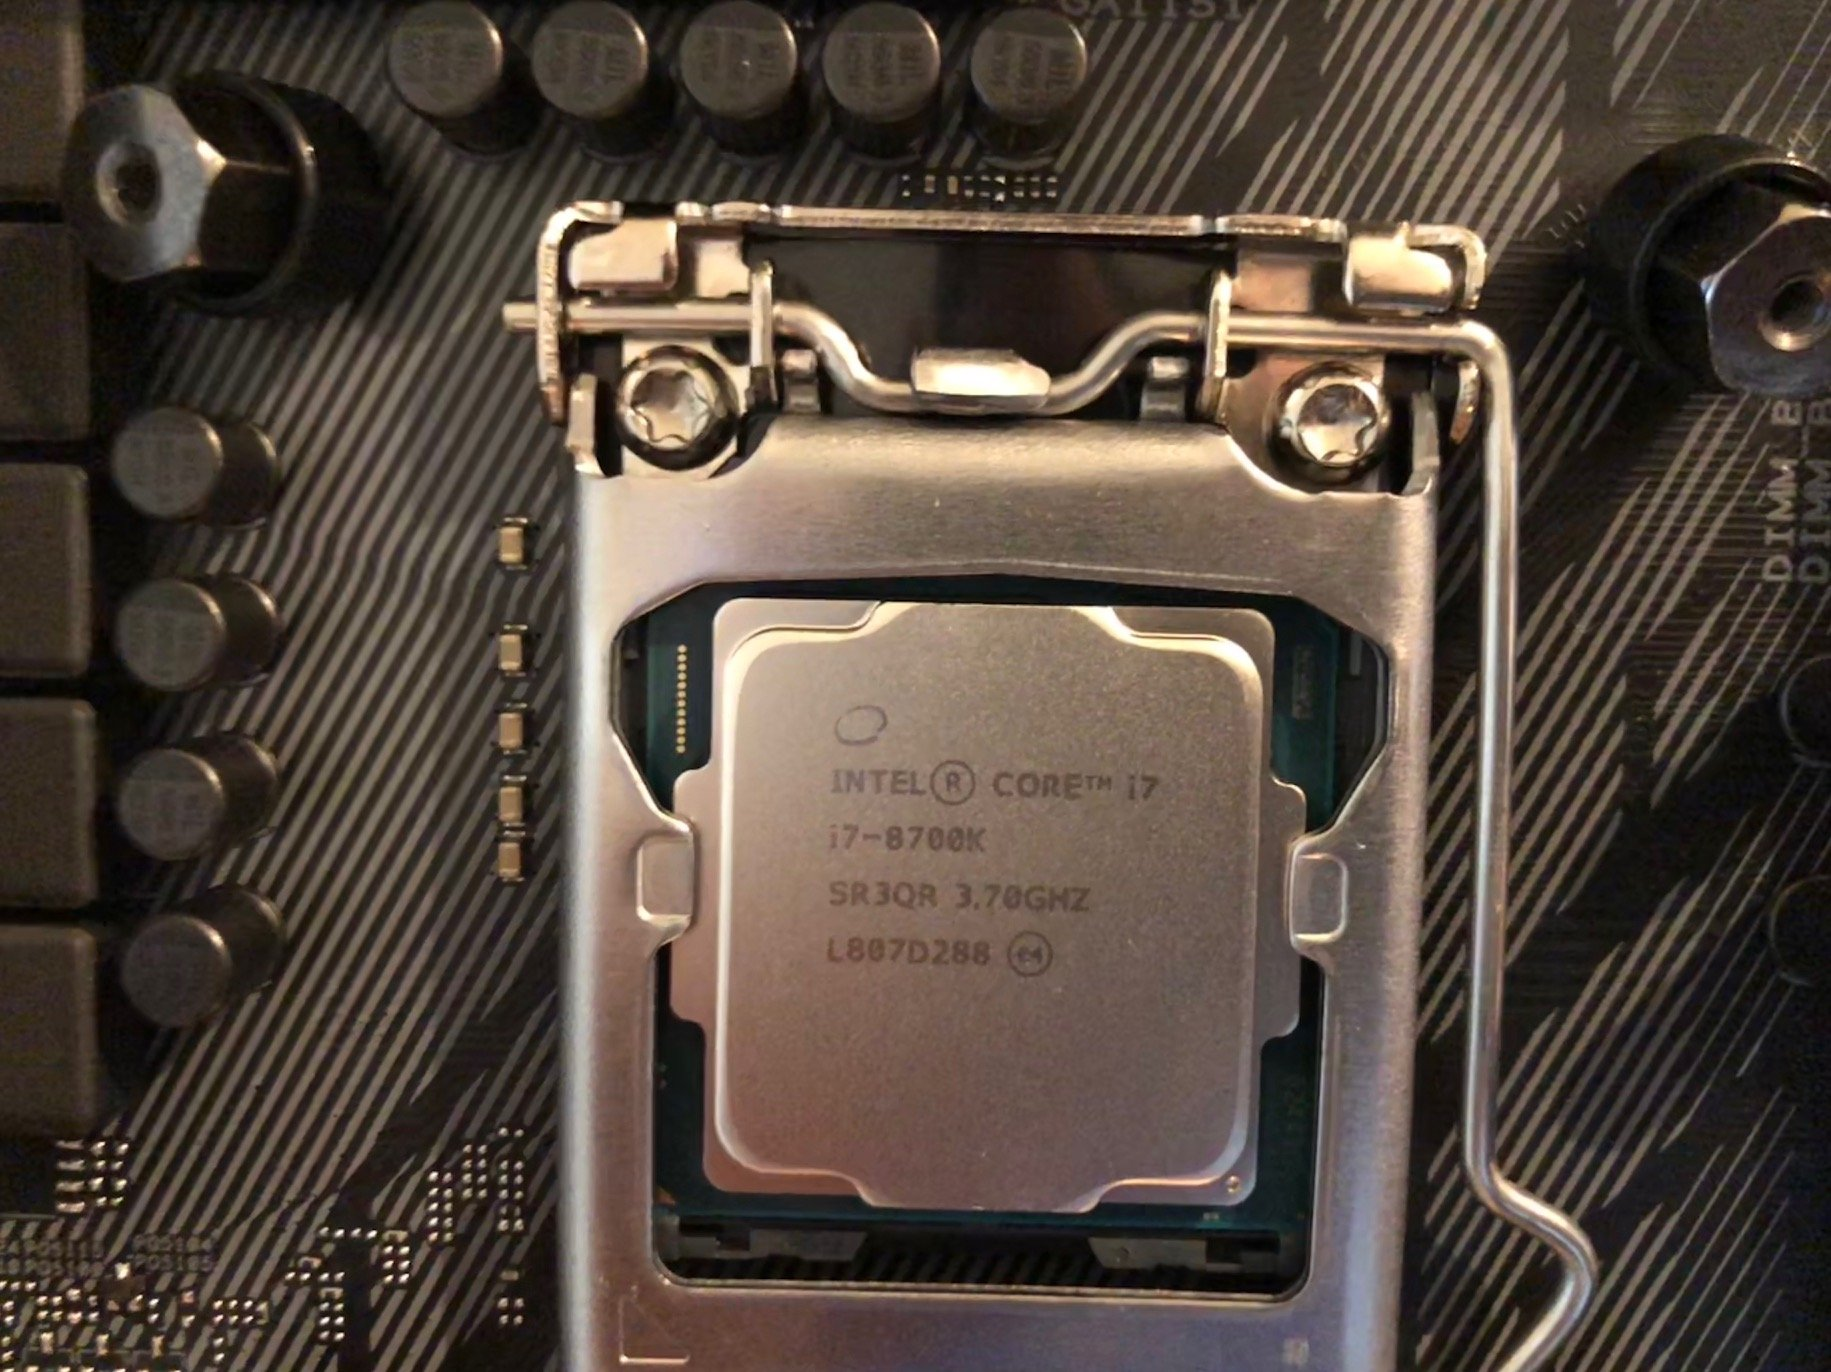 Close-up of the CPU